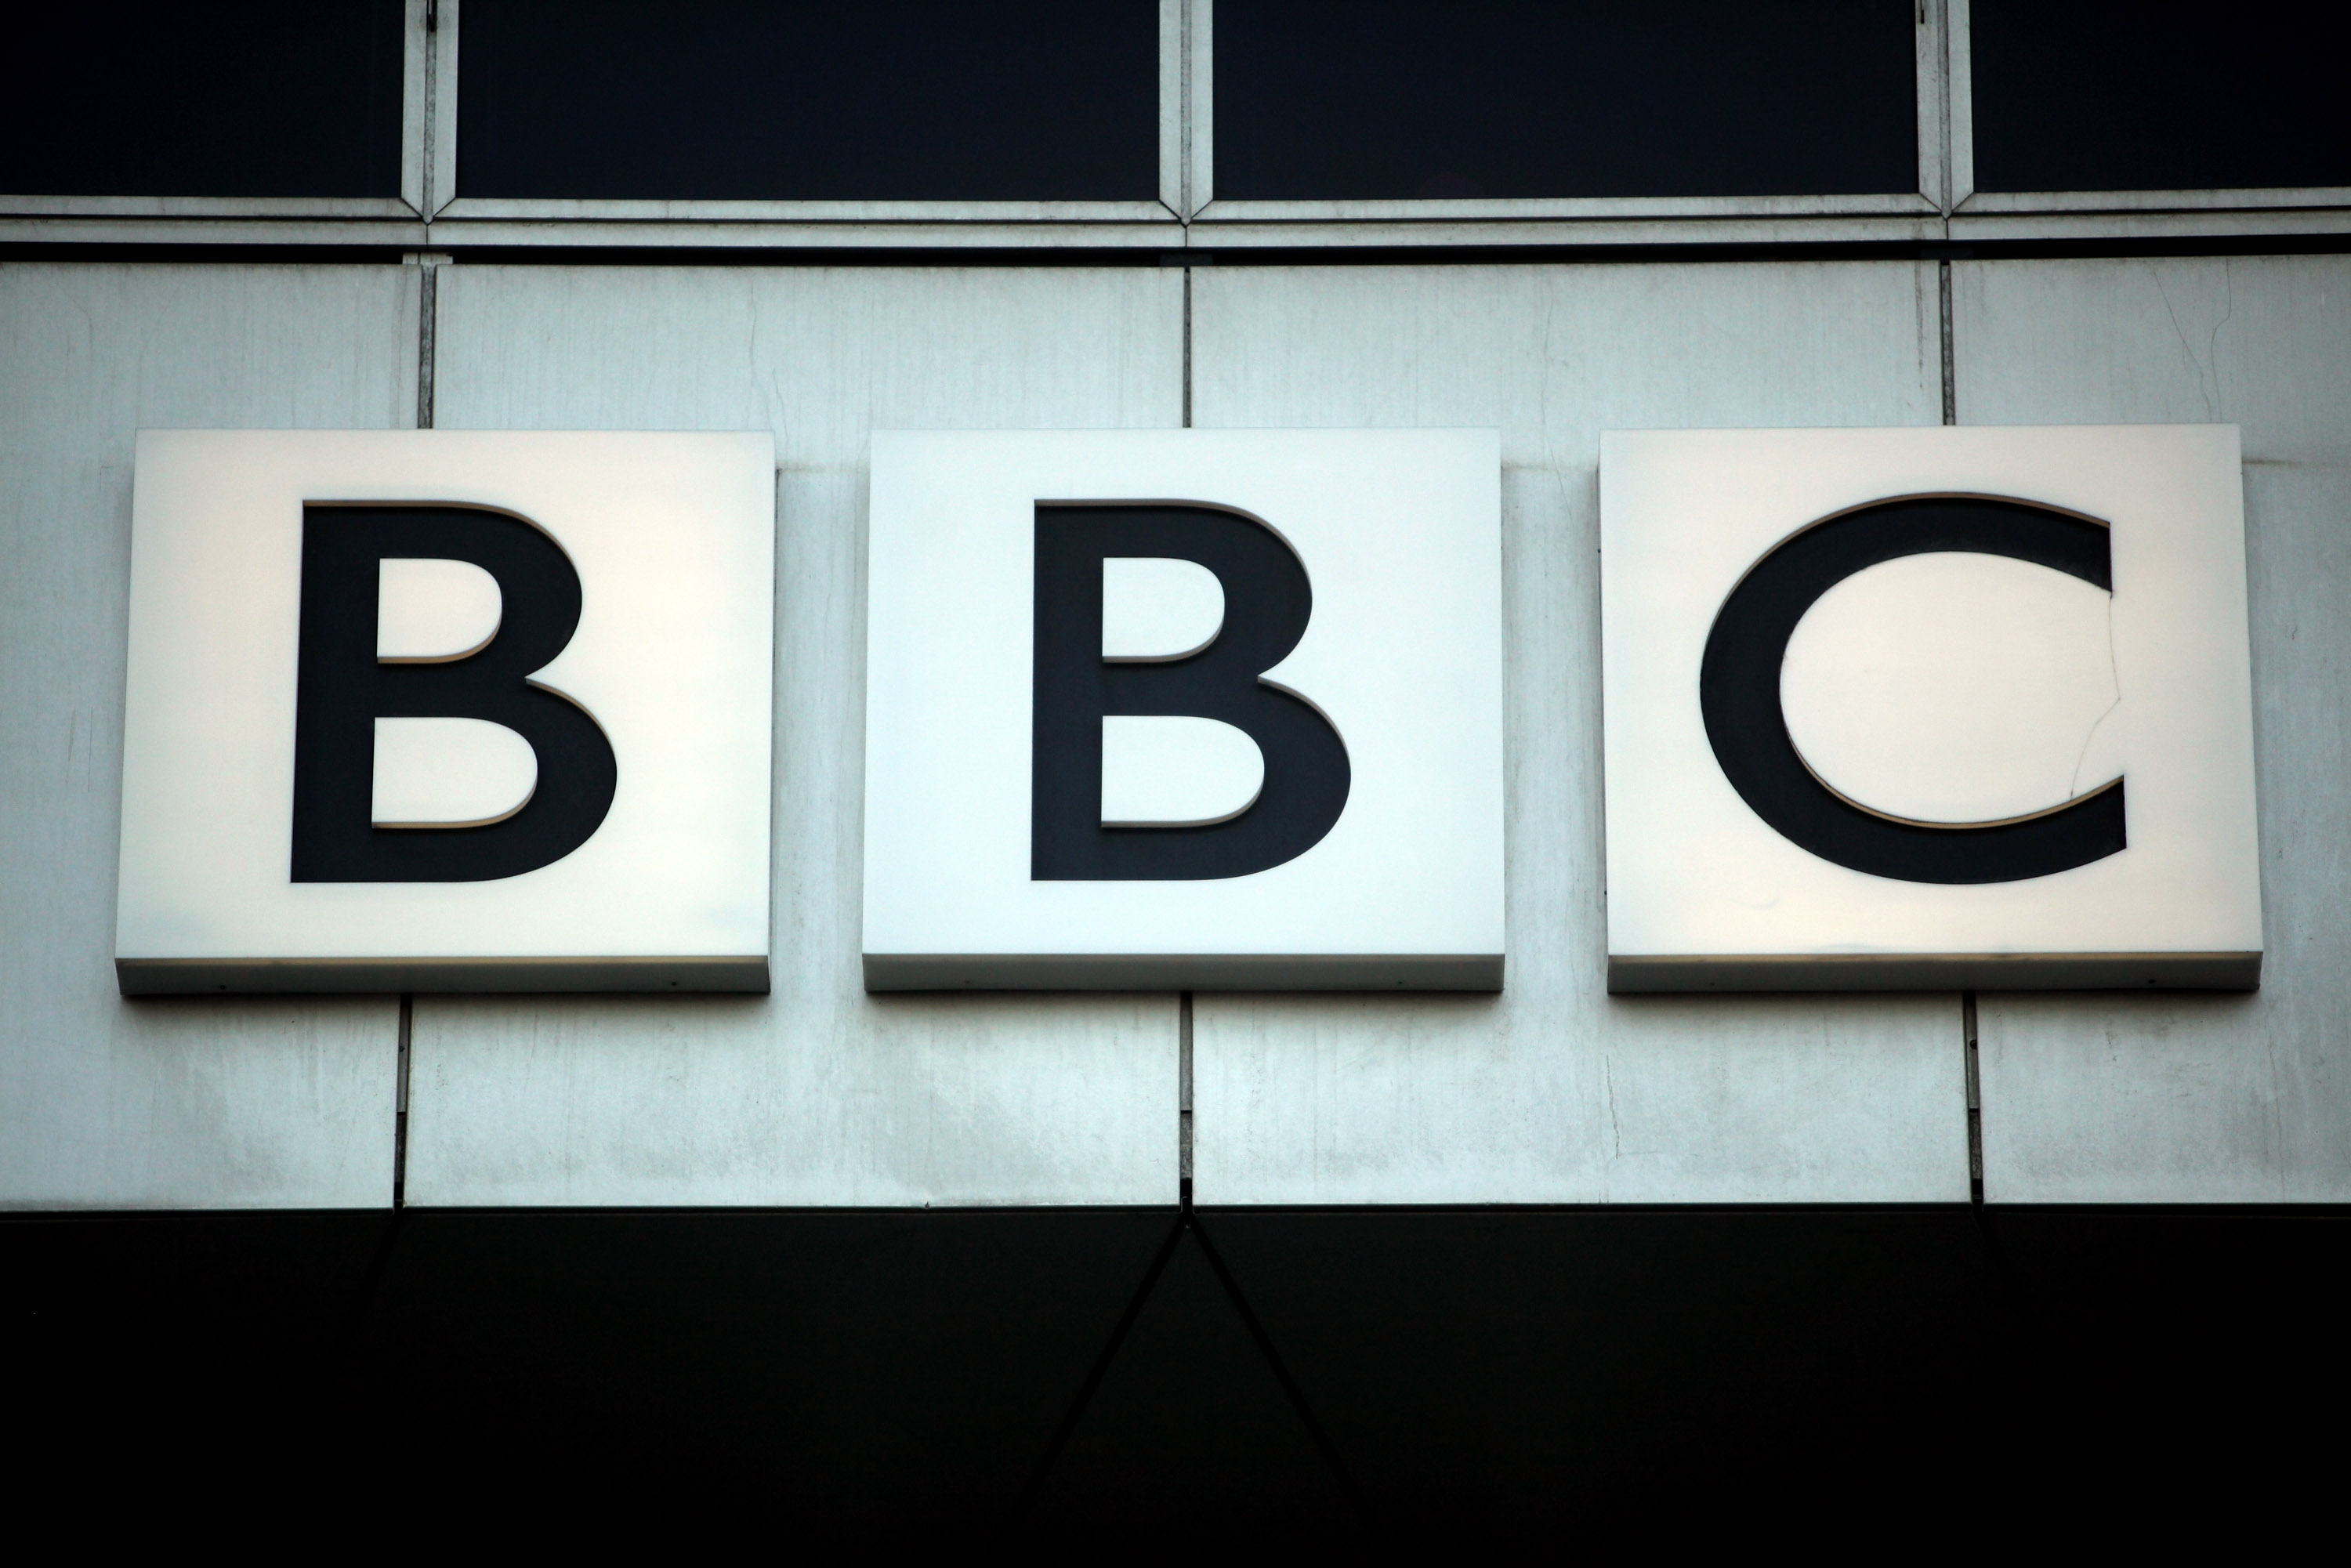 The BBC appoints its new Director General: Former Director of News, Tony Hall